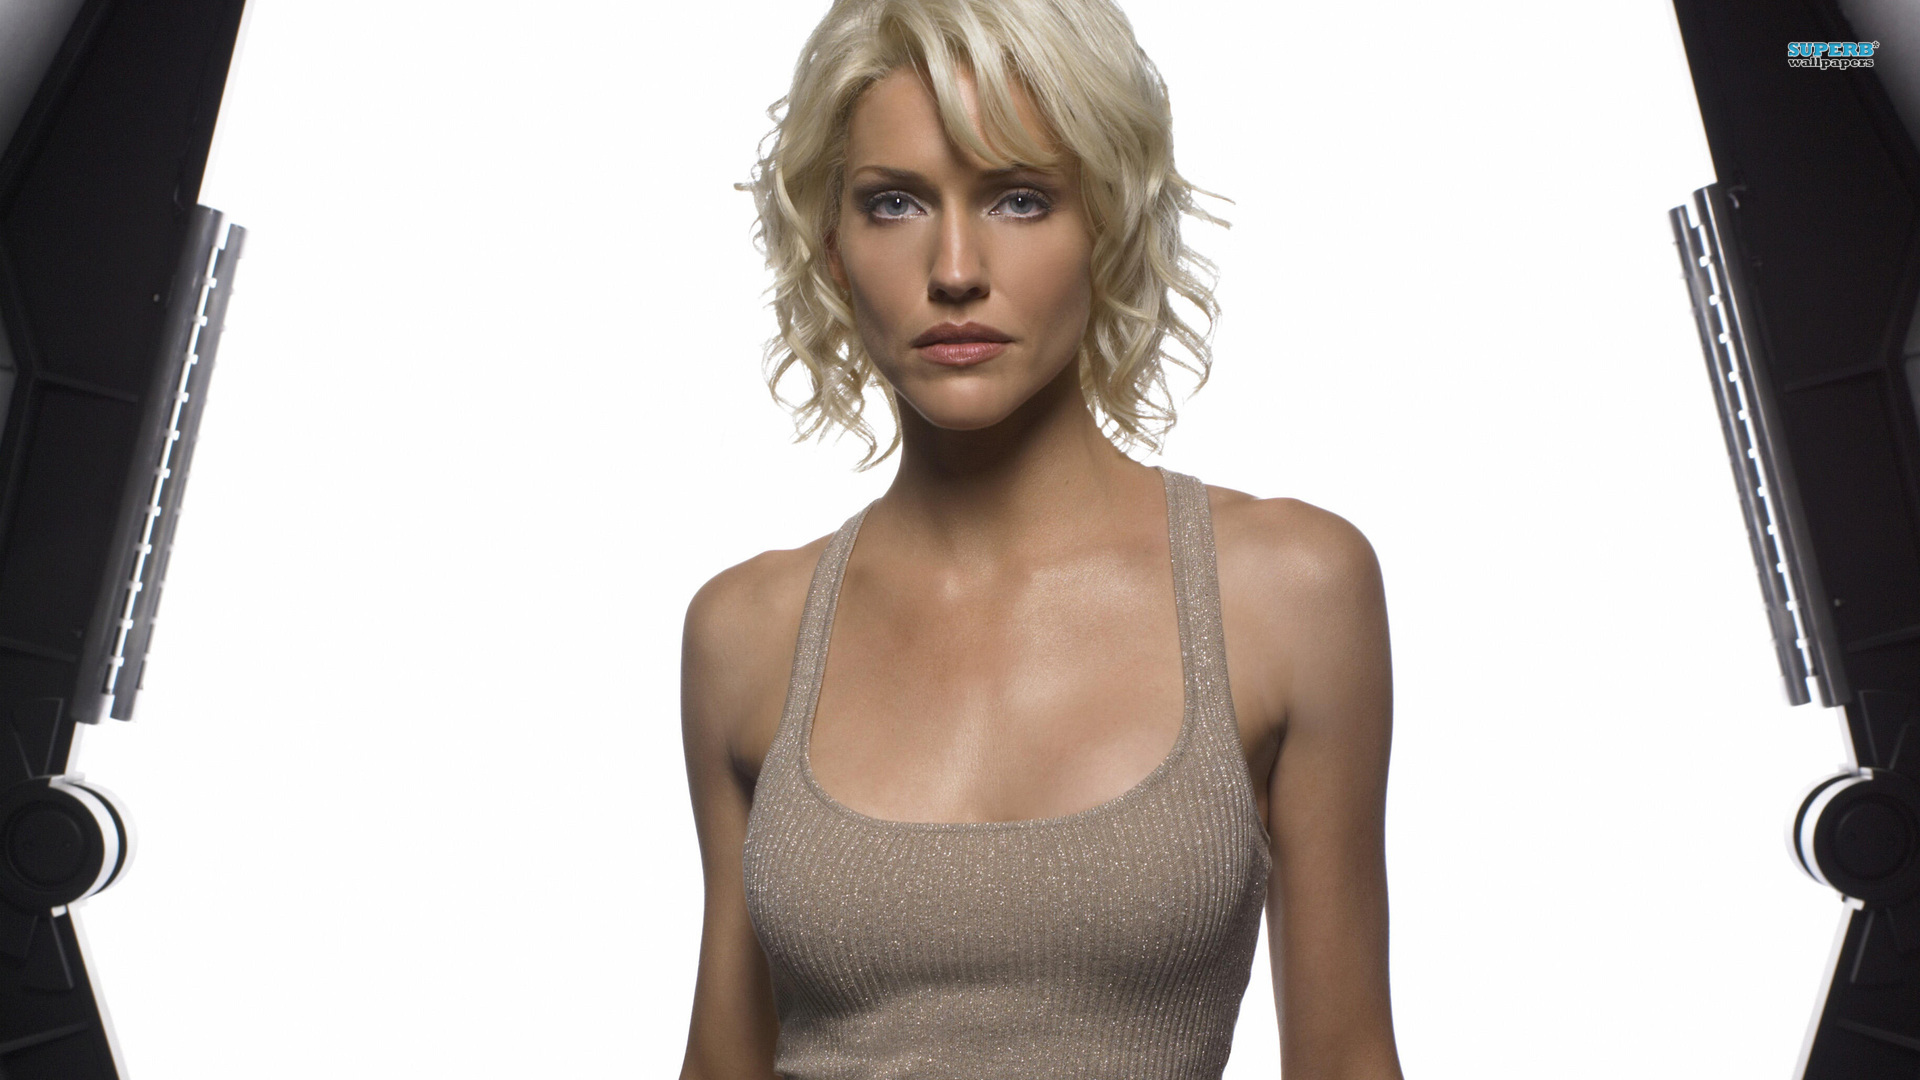 Tricia Helfer wallpaper 1920x1080